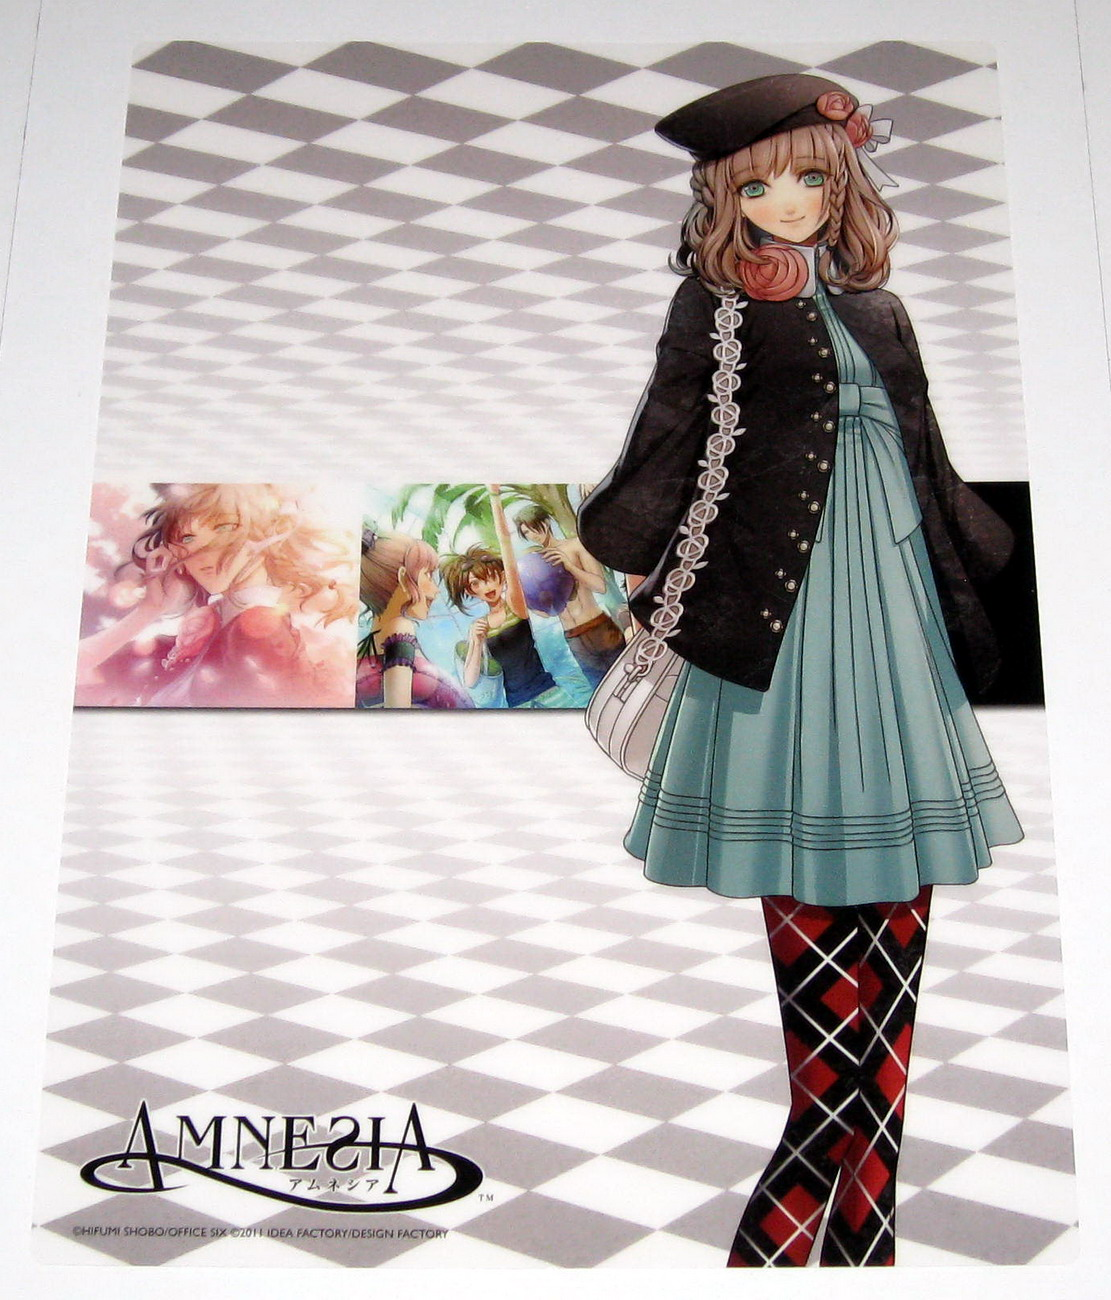 Amnesia Still Collection Premium v7 - 07